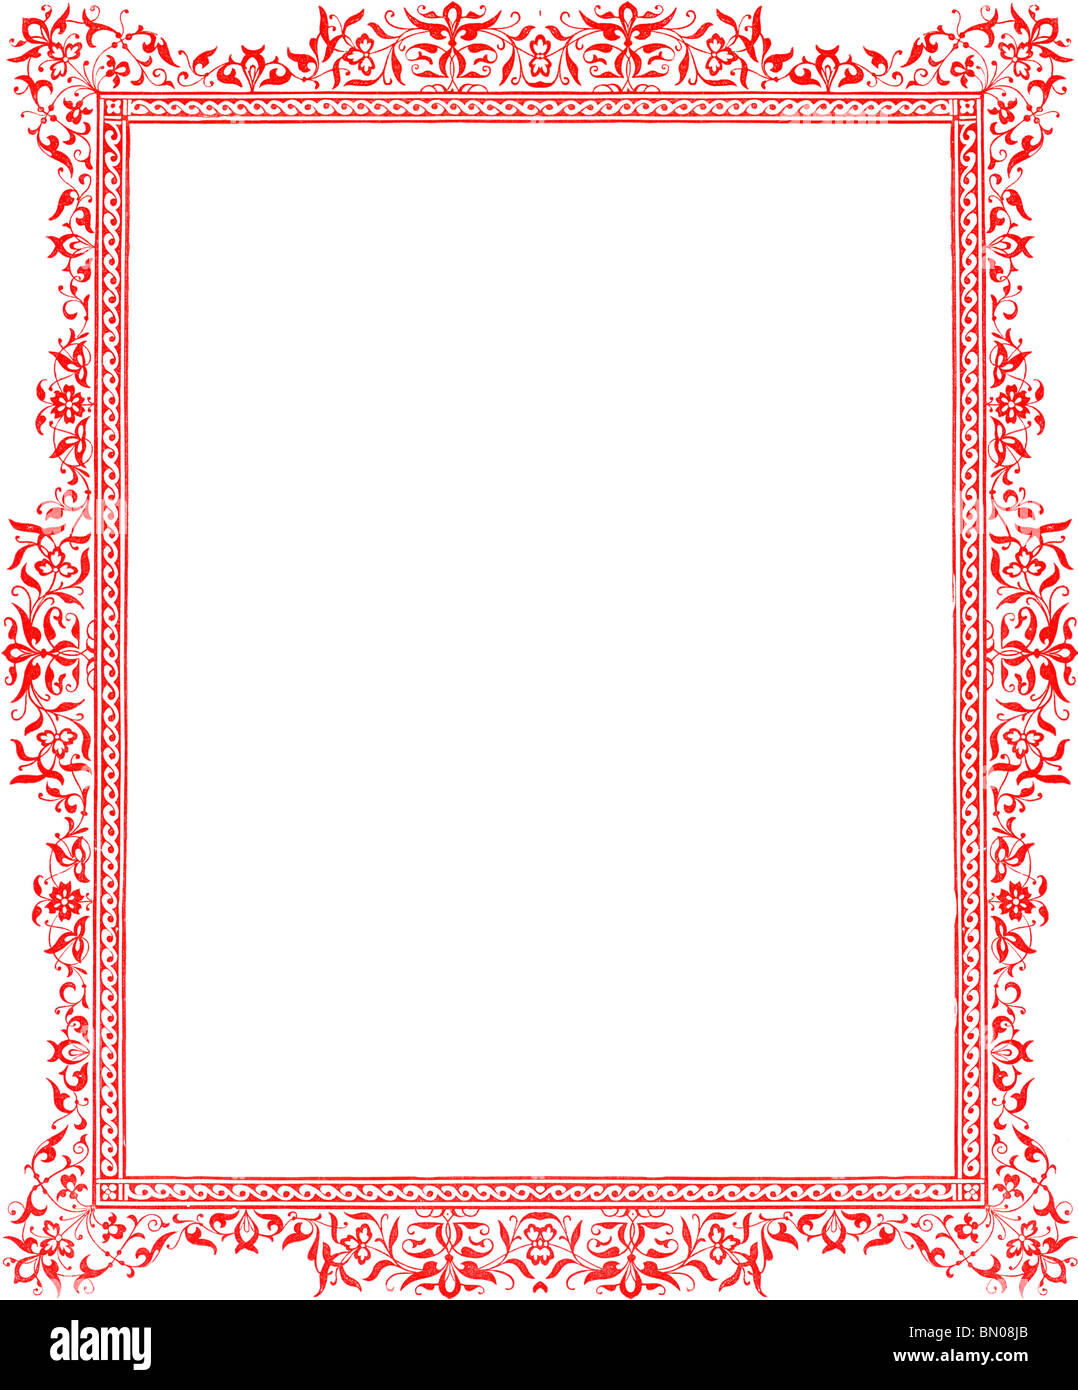 Decorative 1860 Victorian Red Full-Page Floral Border in a Medieval Style Stock Photo